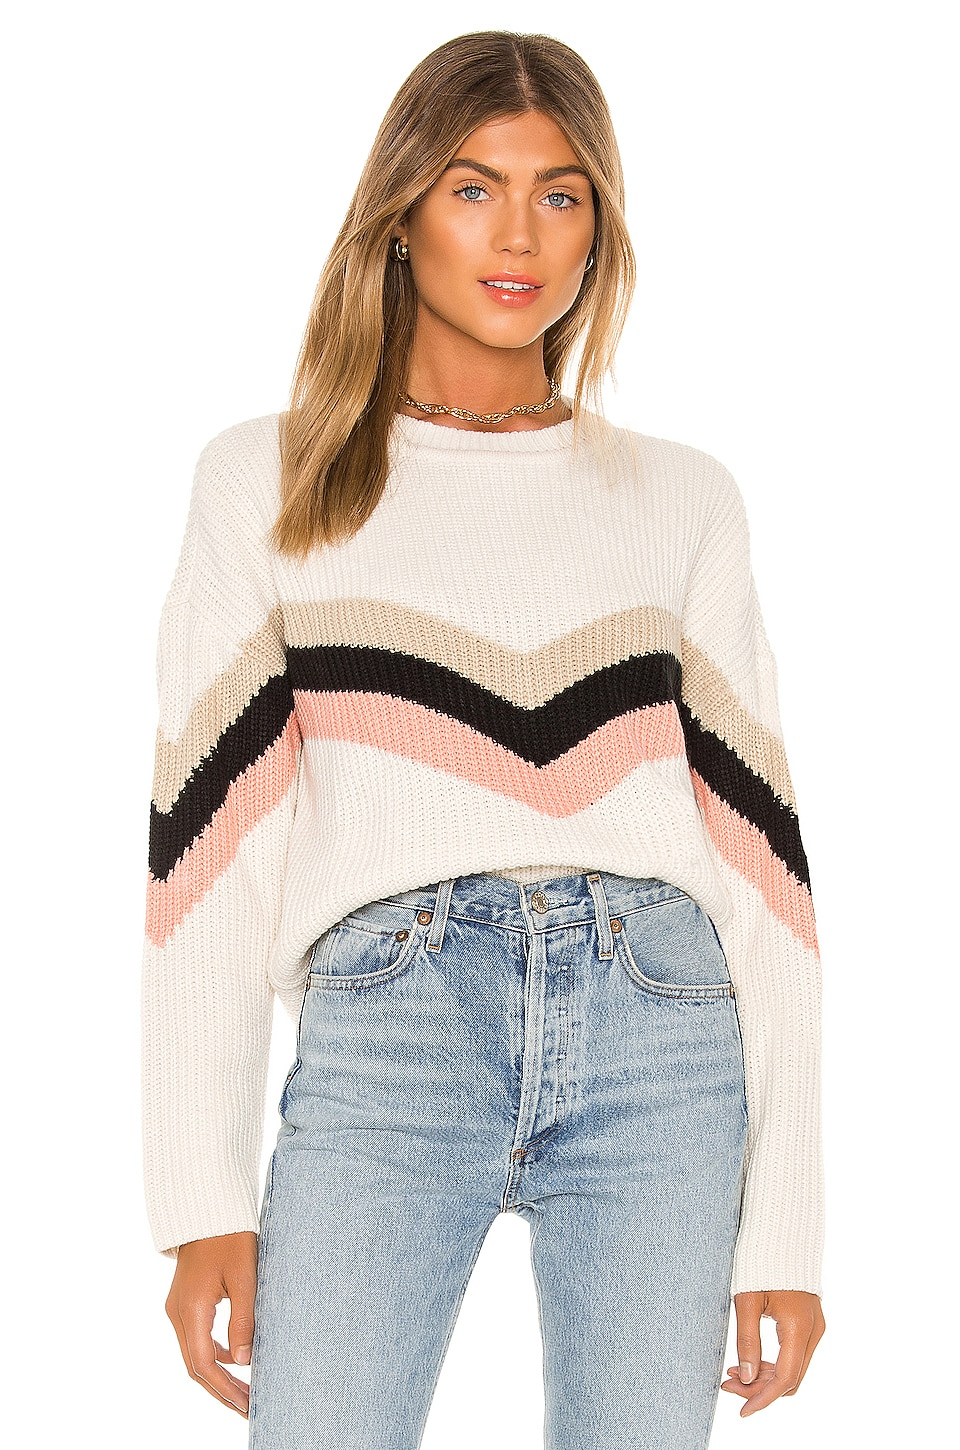 Sanctuary Apres Ski Sweater in Multi